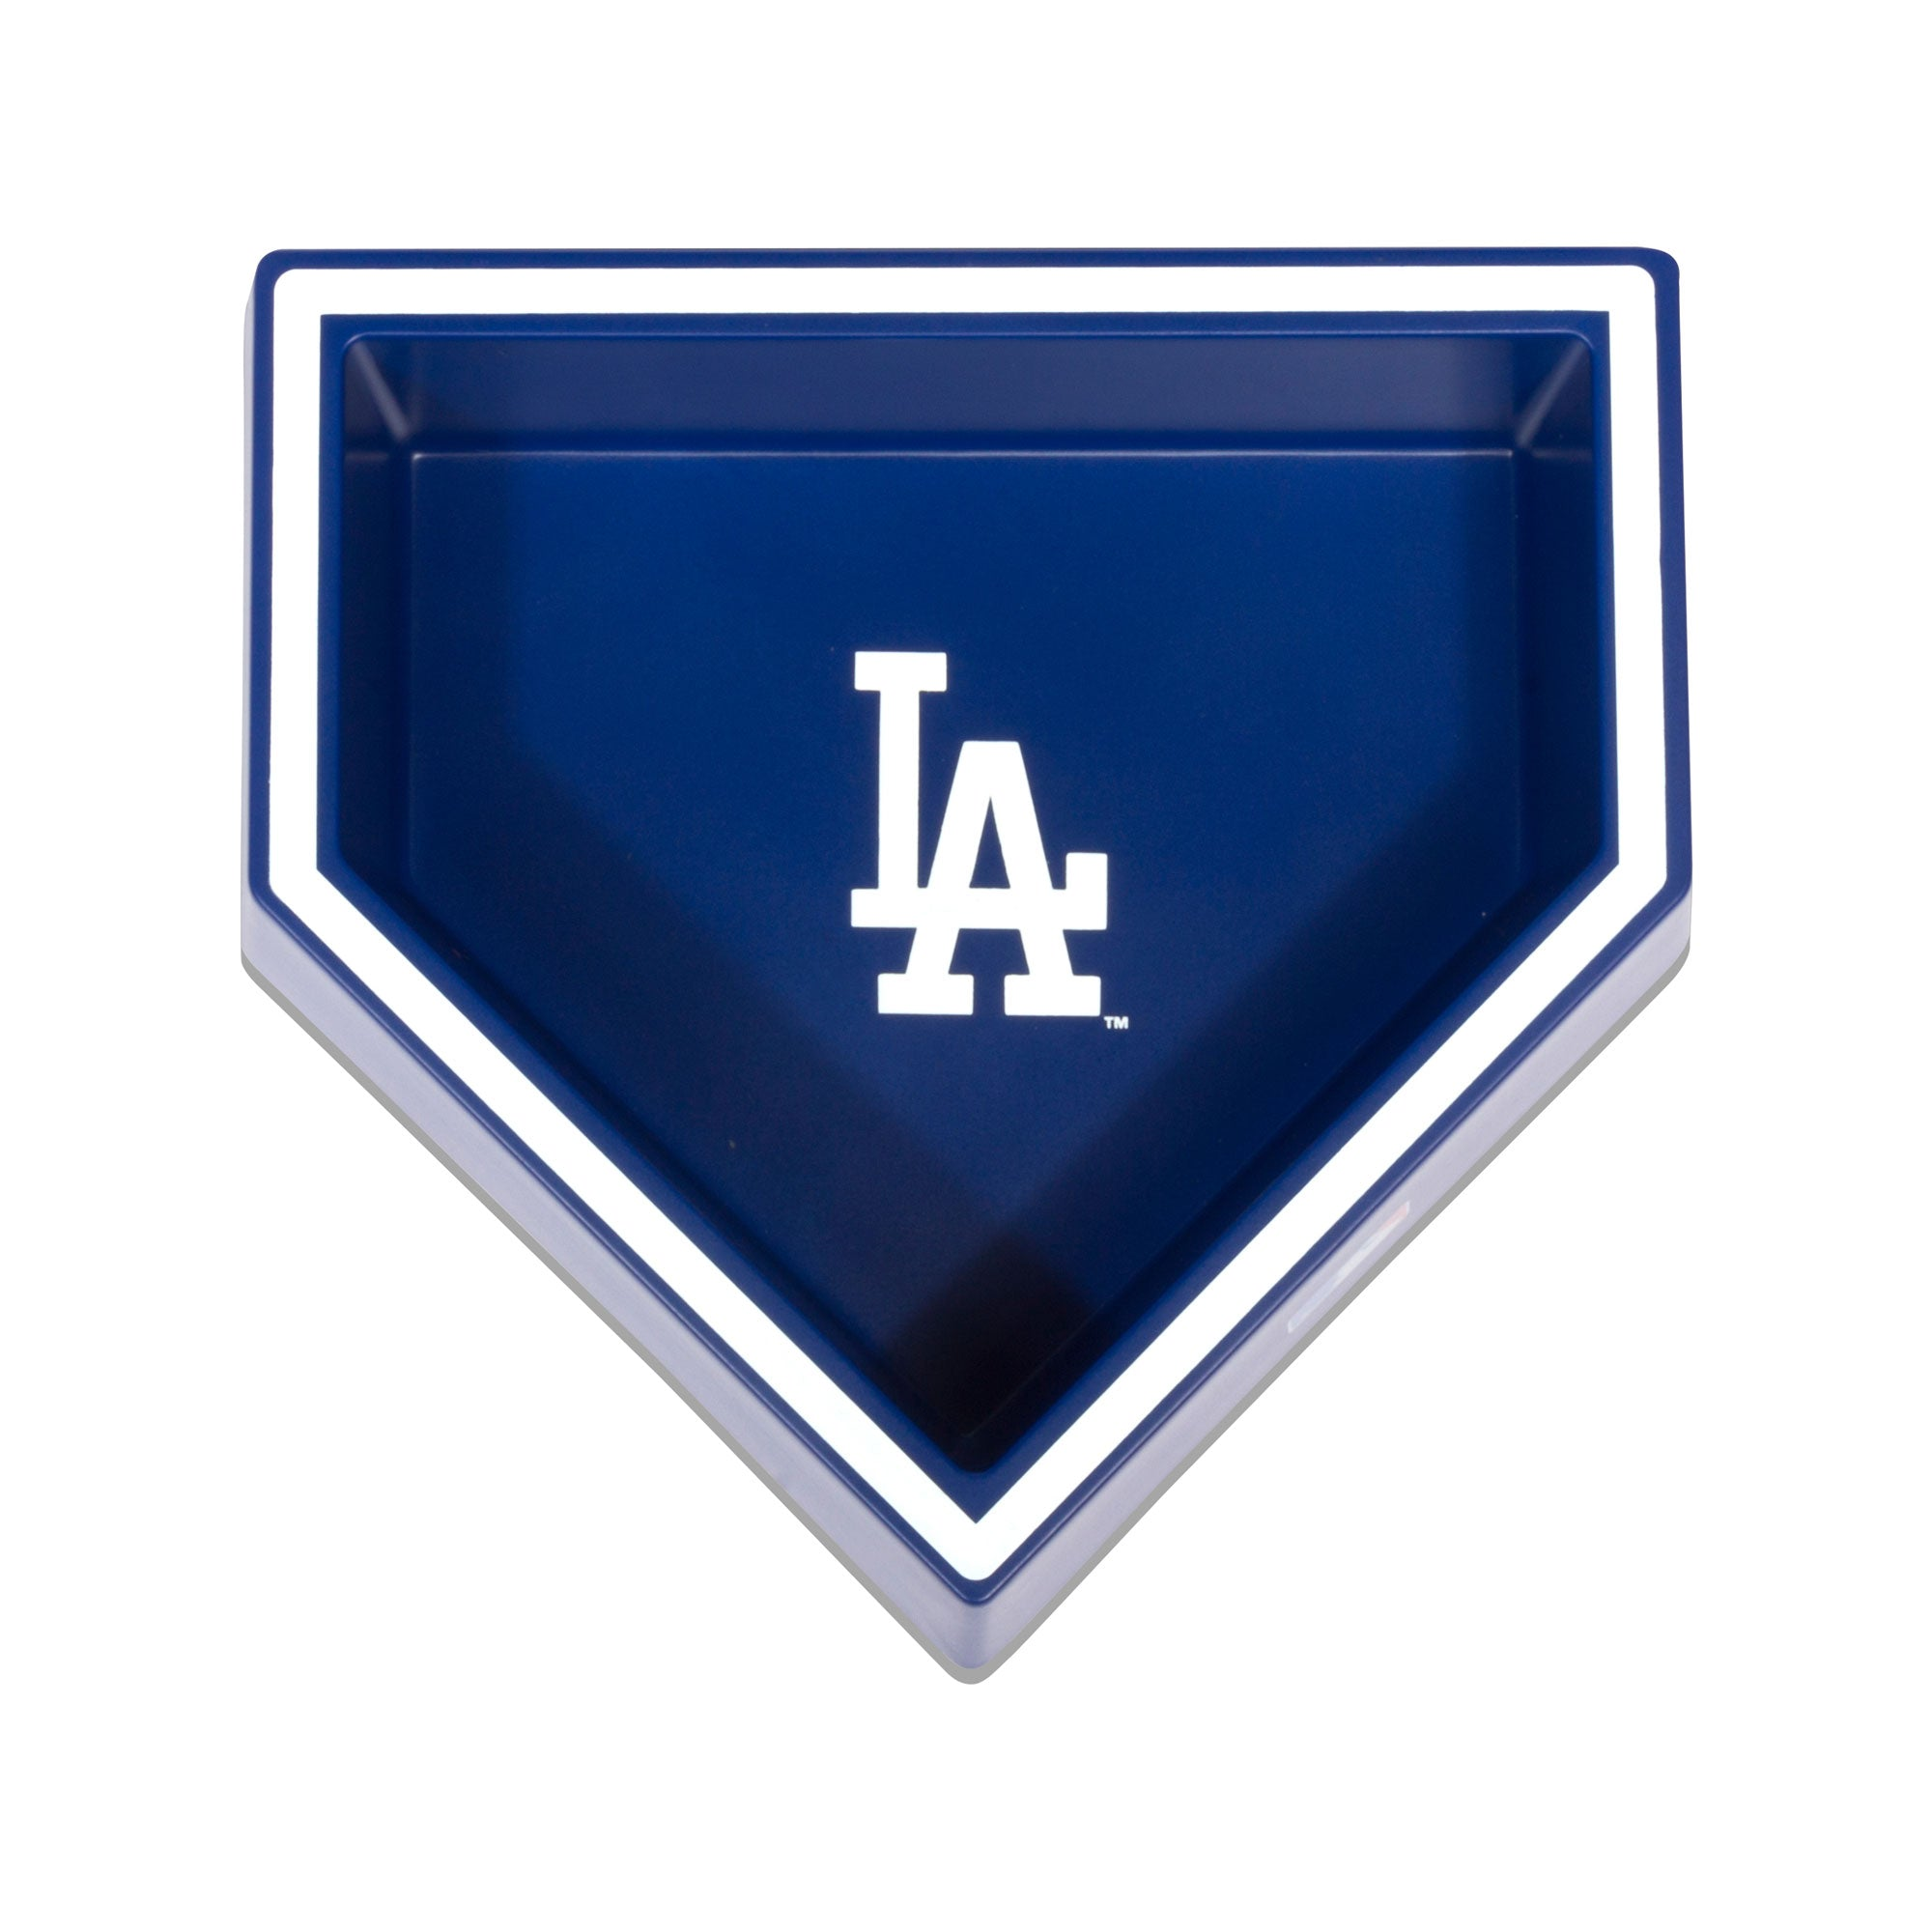 Los Angeles Dodgers Home Plate Bowl